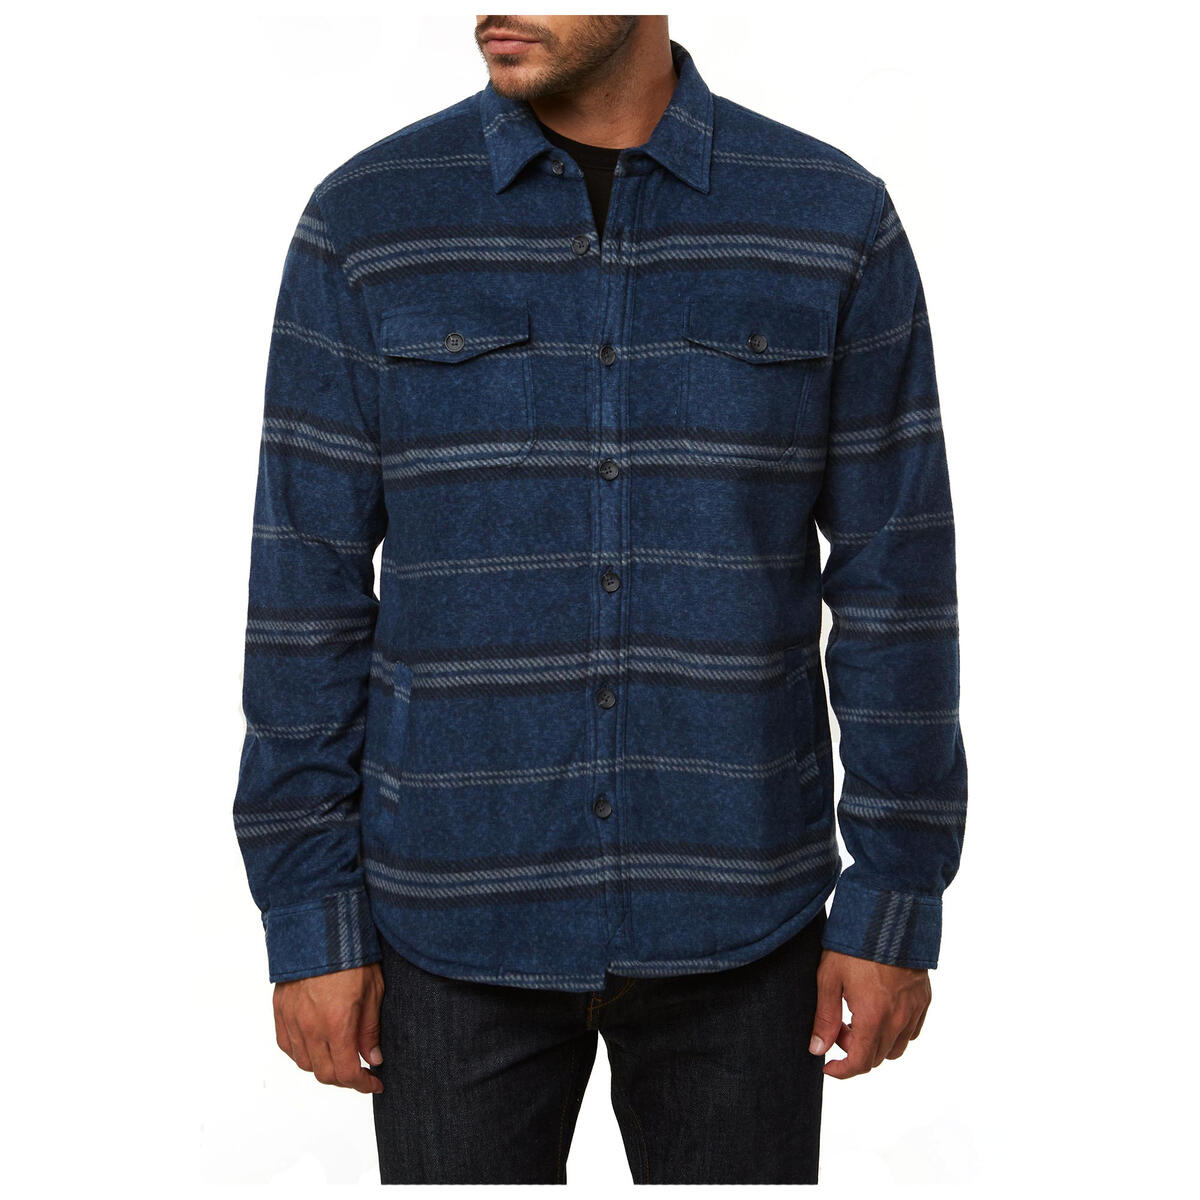 O'neill Men's Glacier Sherpa Lined Lined Button Down Long